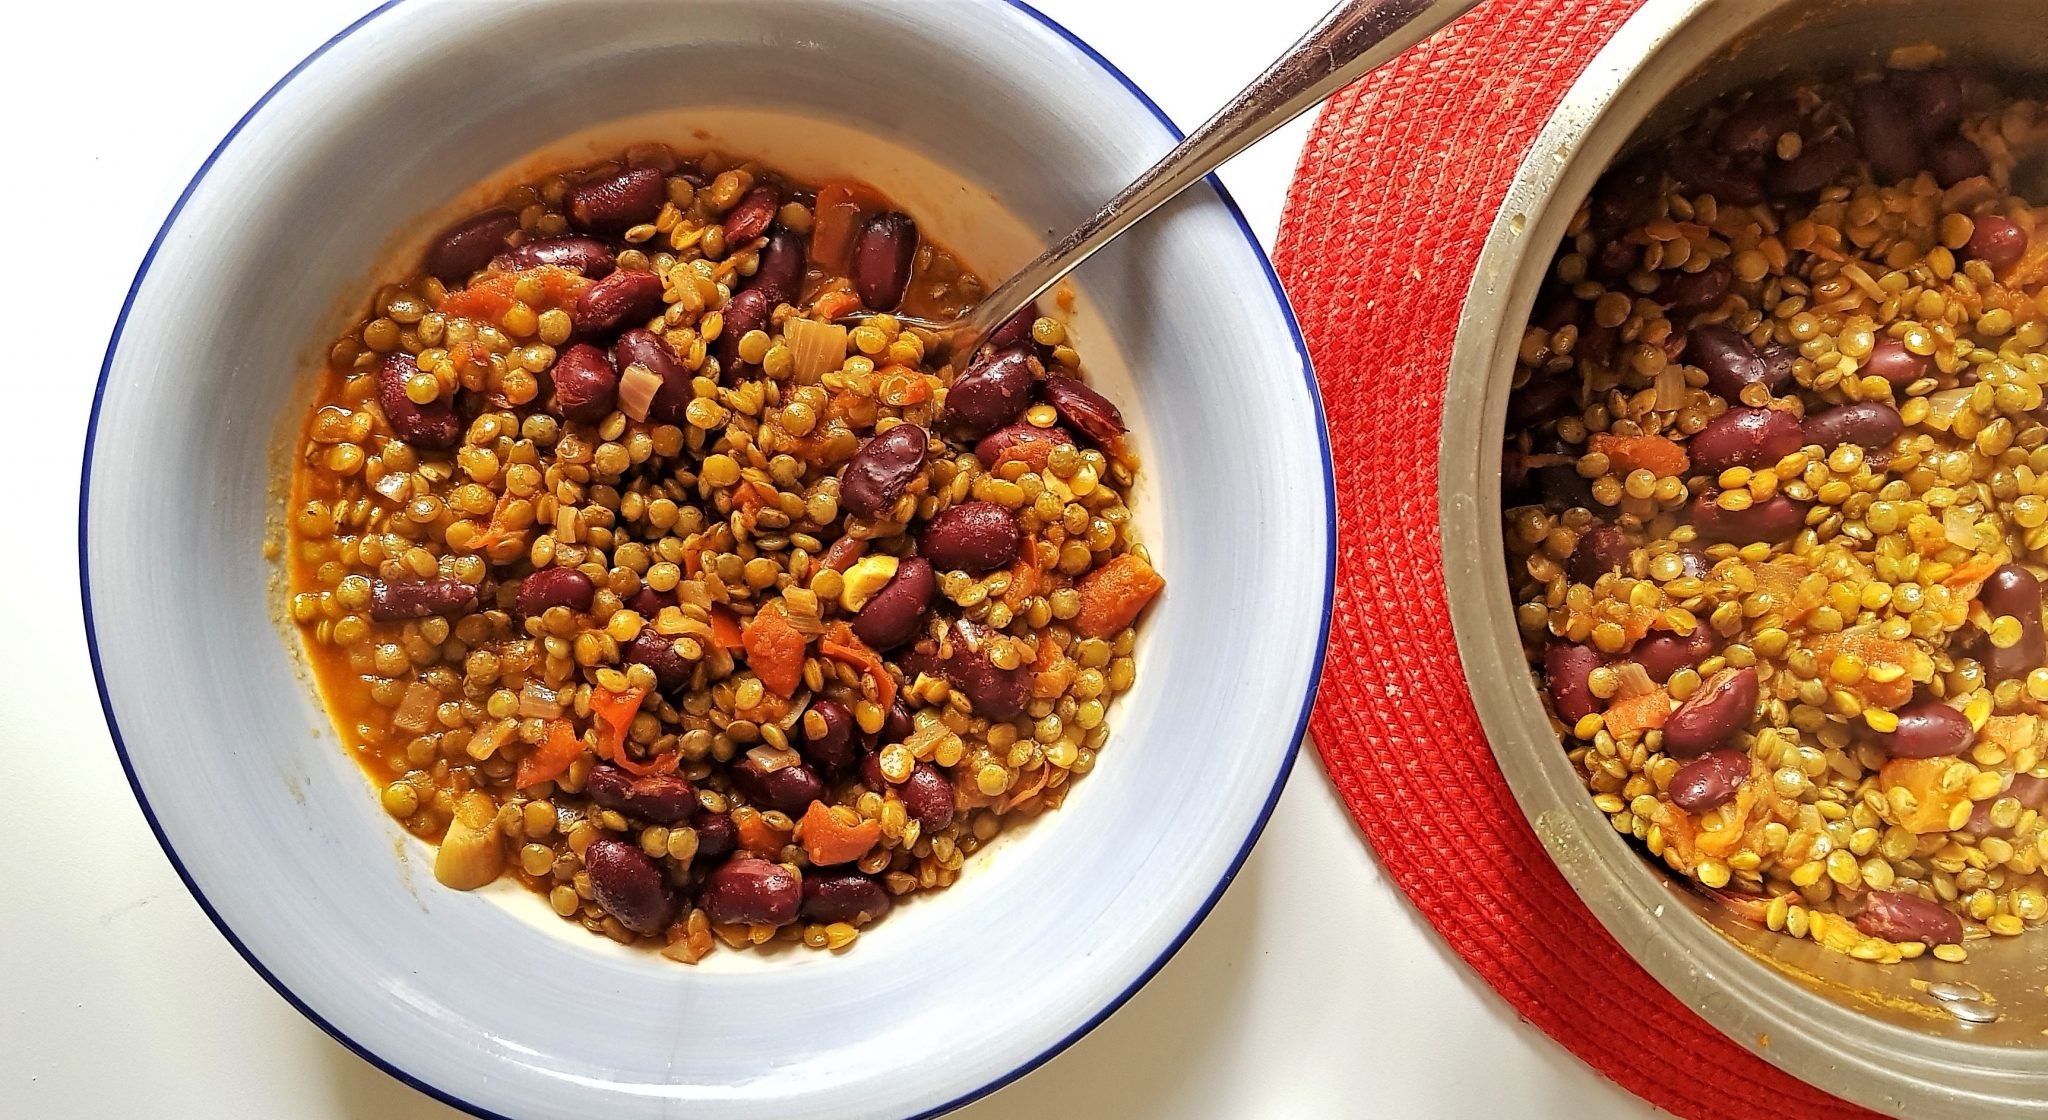 Bean and lentil stew